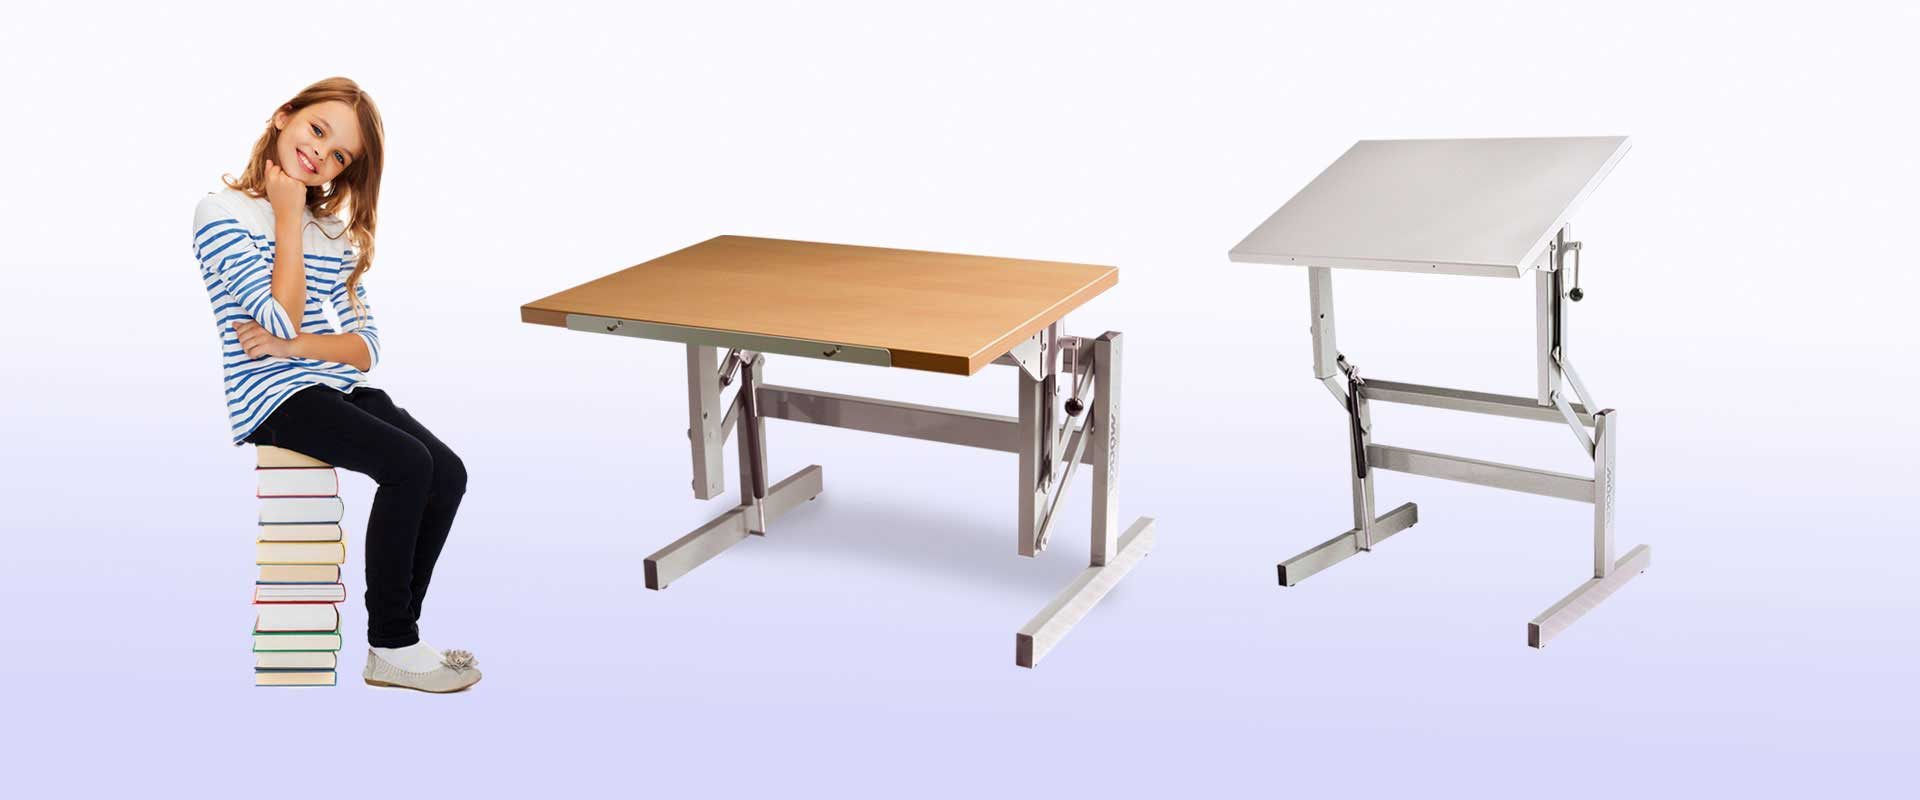 Moeckel Hight And Inclination Adjustable Desks And Tables